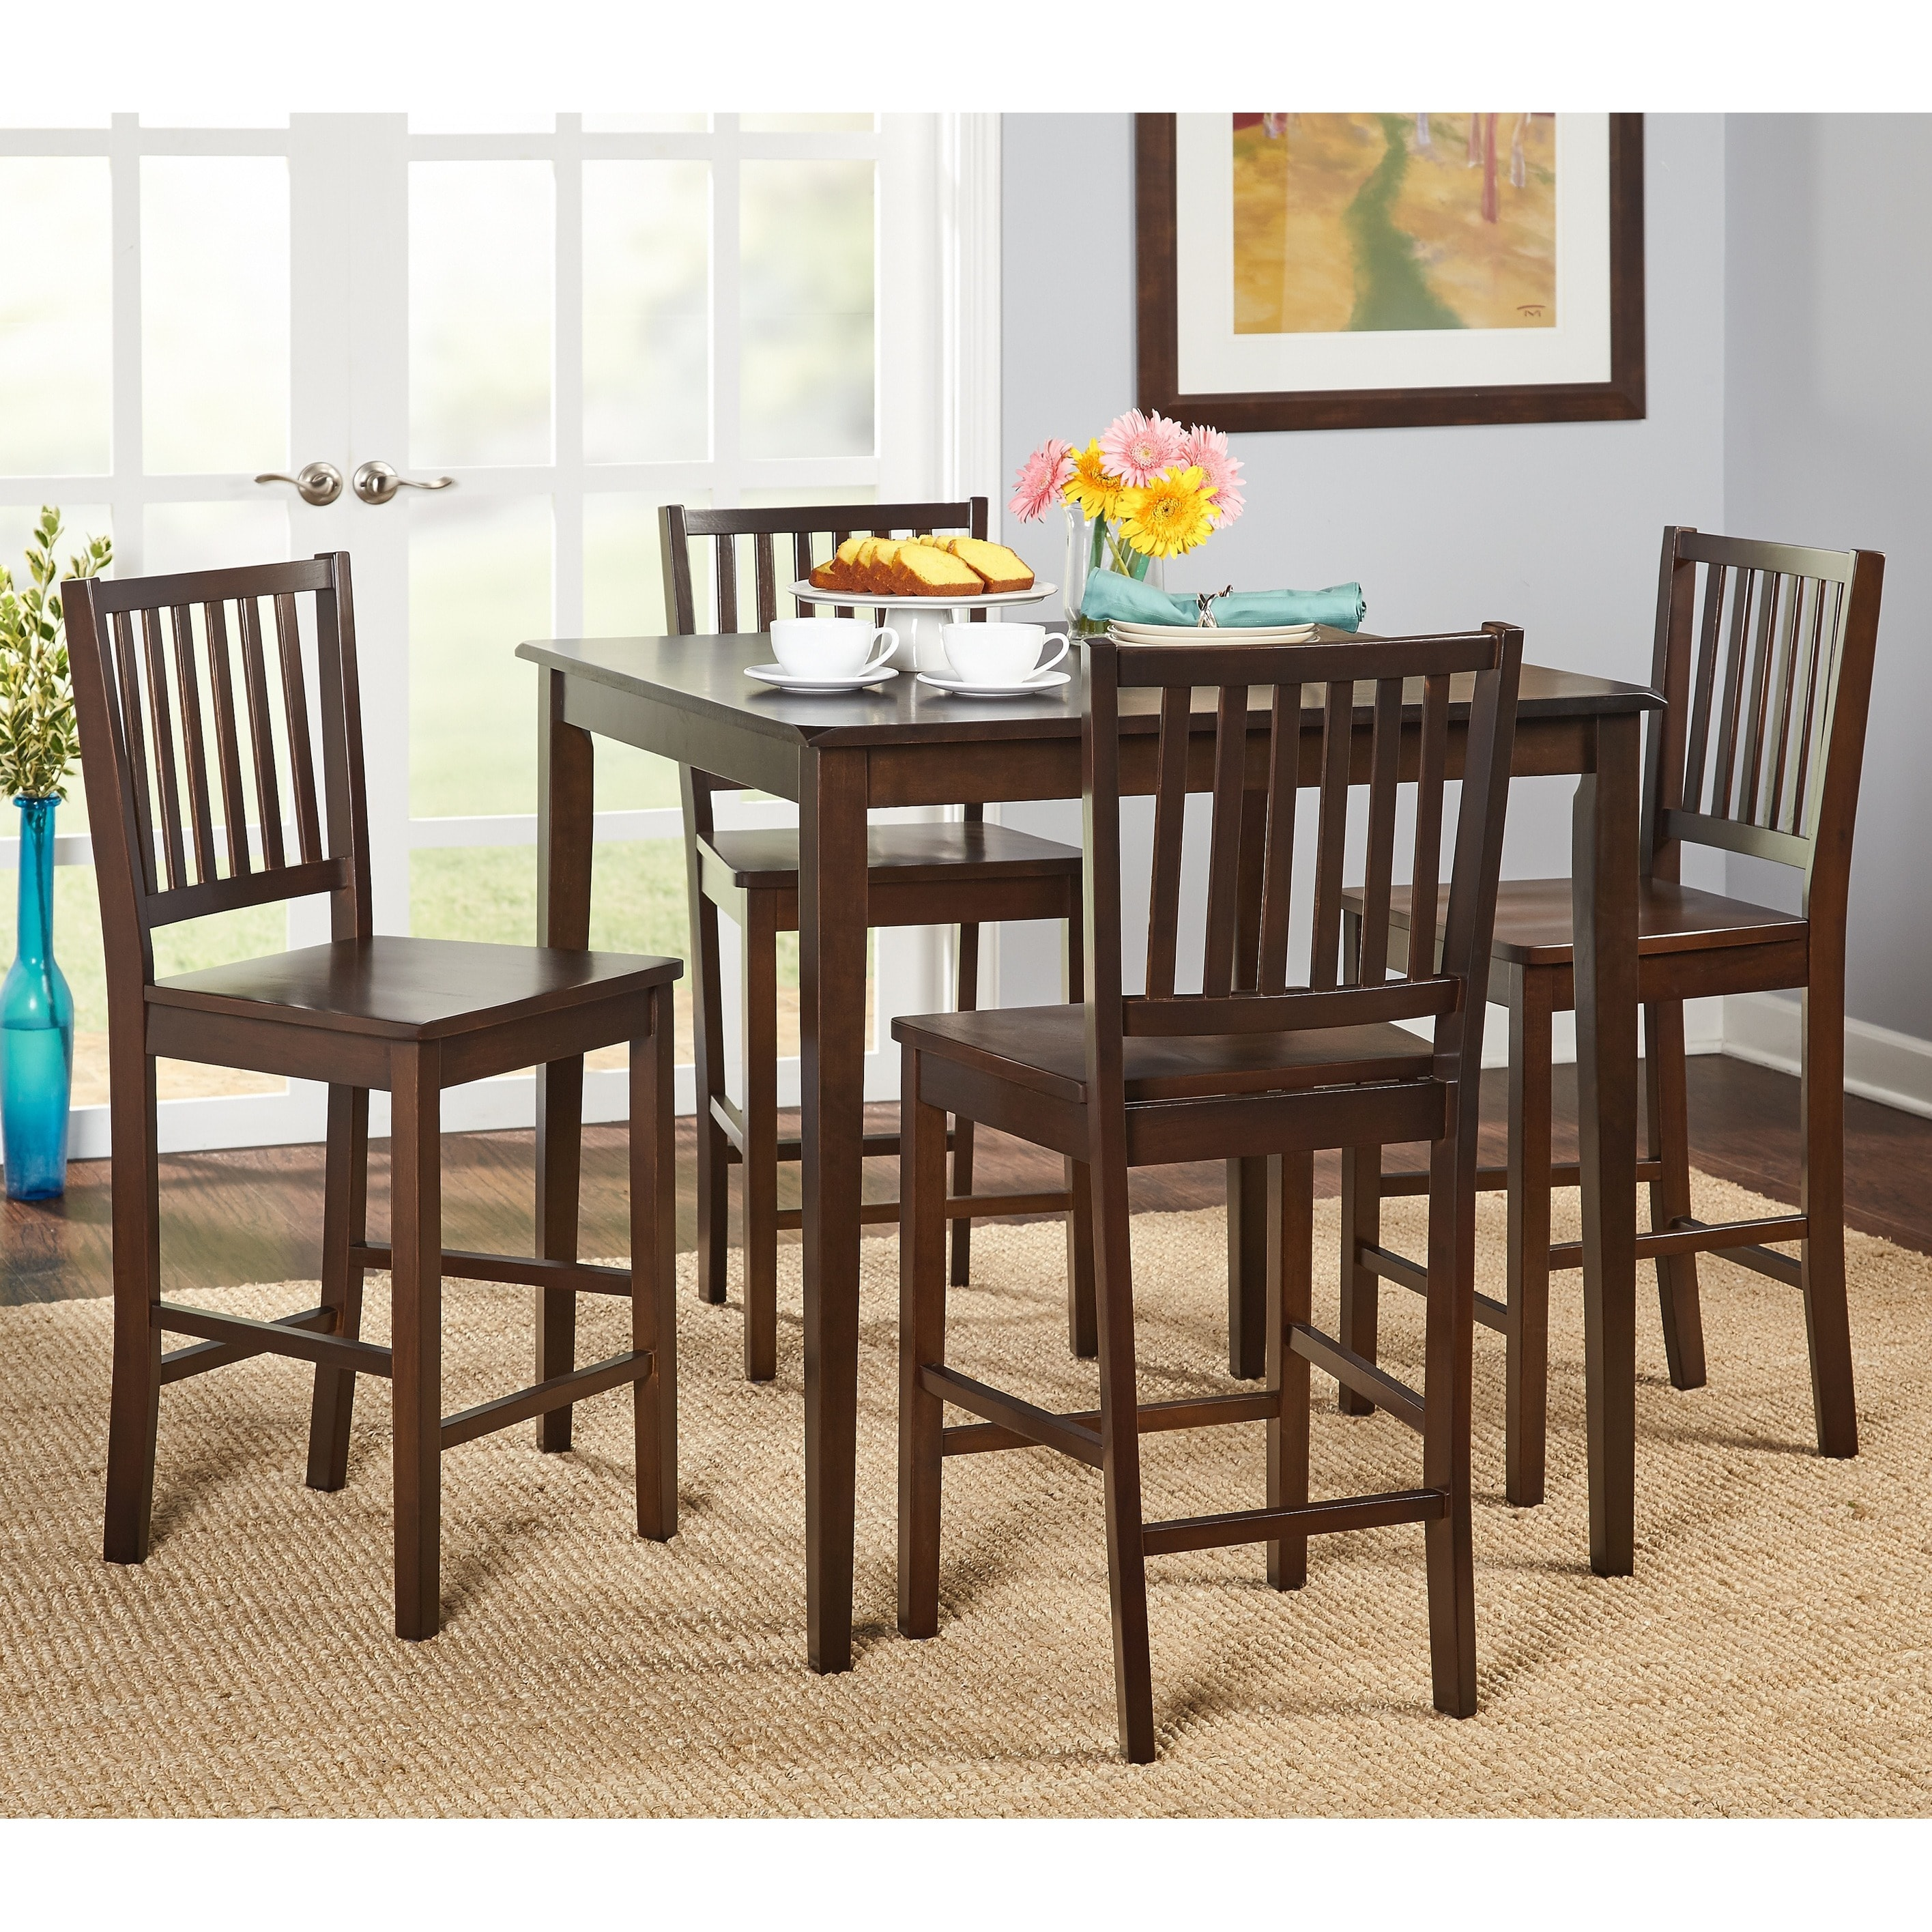 Good Shop Simple Living Shaker Counter Height 5 Piece Dining Set   Free Shipping  Today   Overstock.com   7512046